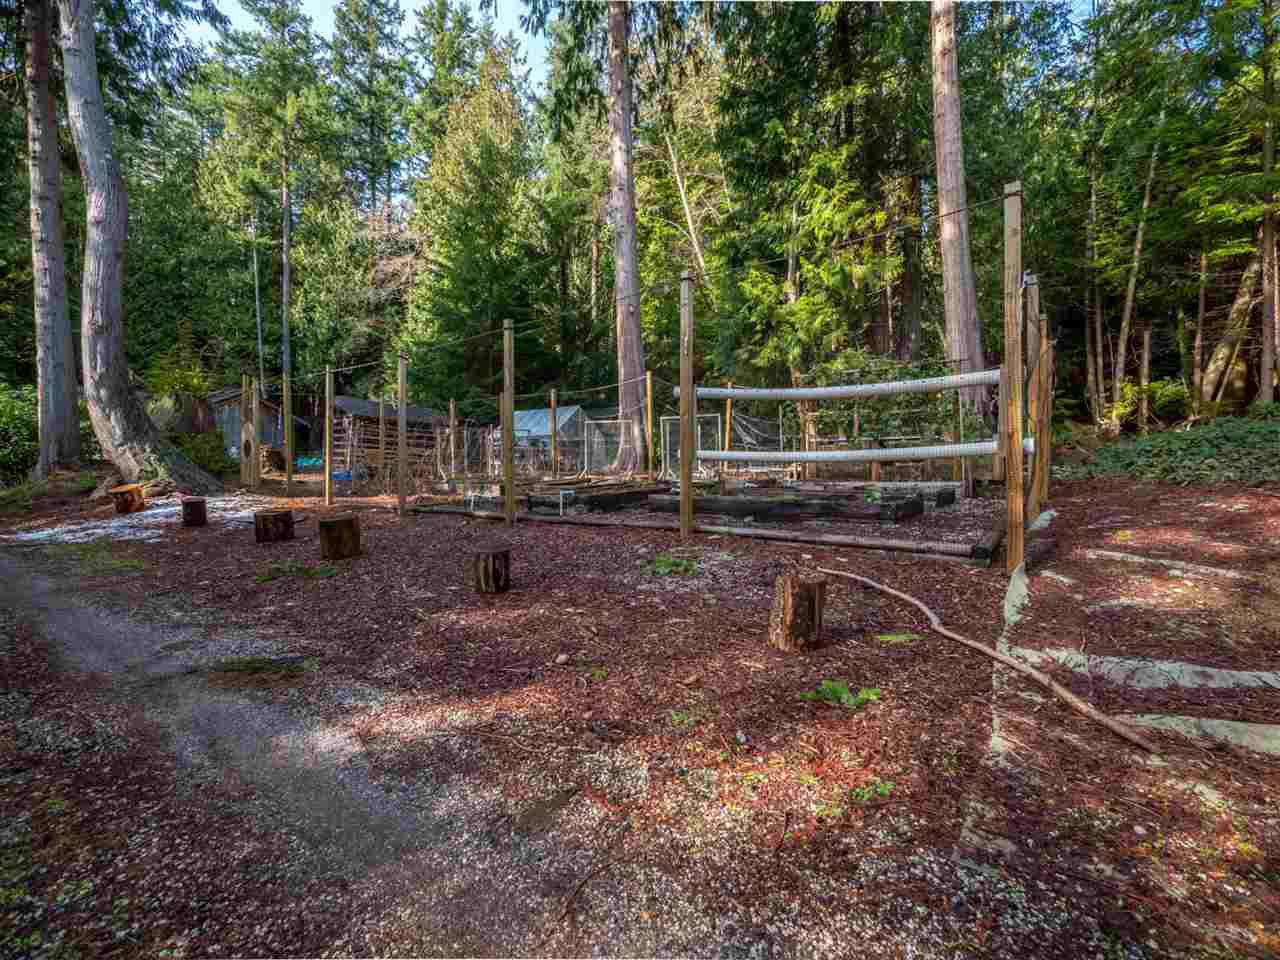 Photo 16: Photos: 1421 MARGARET Road: Roberts Creek House for sale (Sunshine Coast)  : MLS®# R2243186